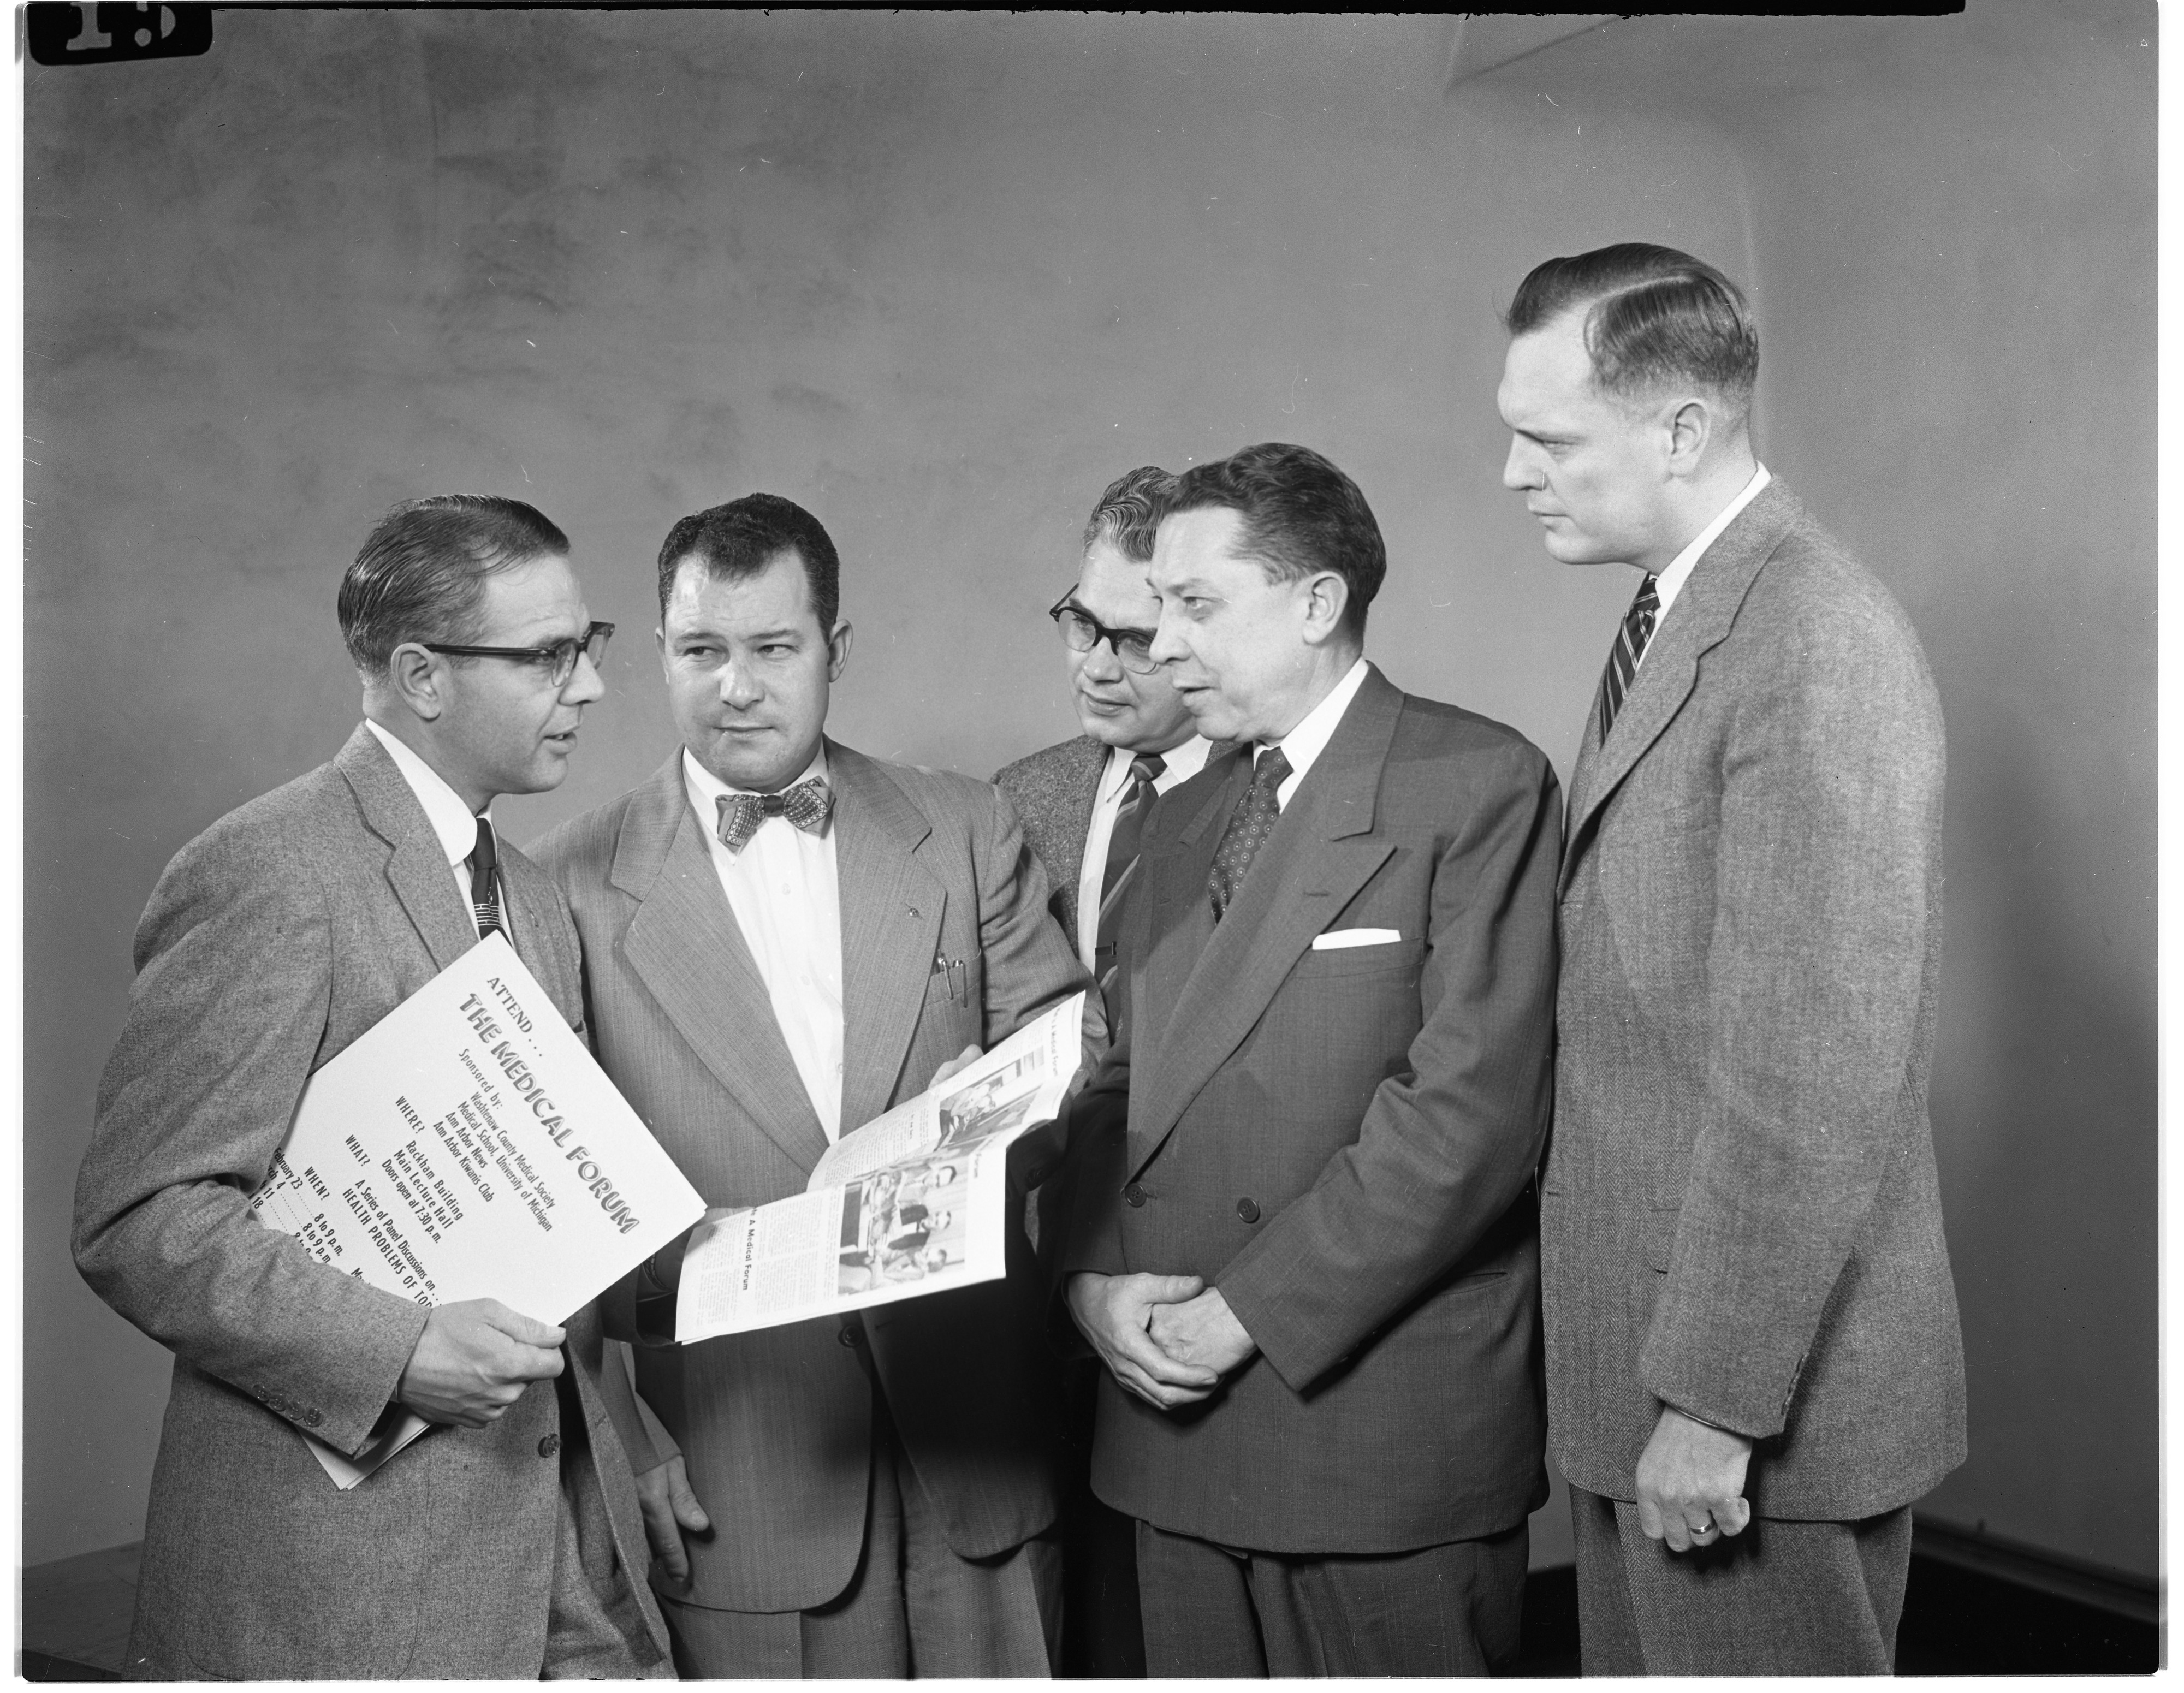 Kiwanis Club To Sponsor Series of Medical Forums at Rackham, February 1954 image